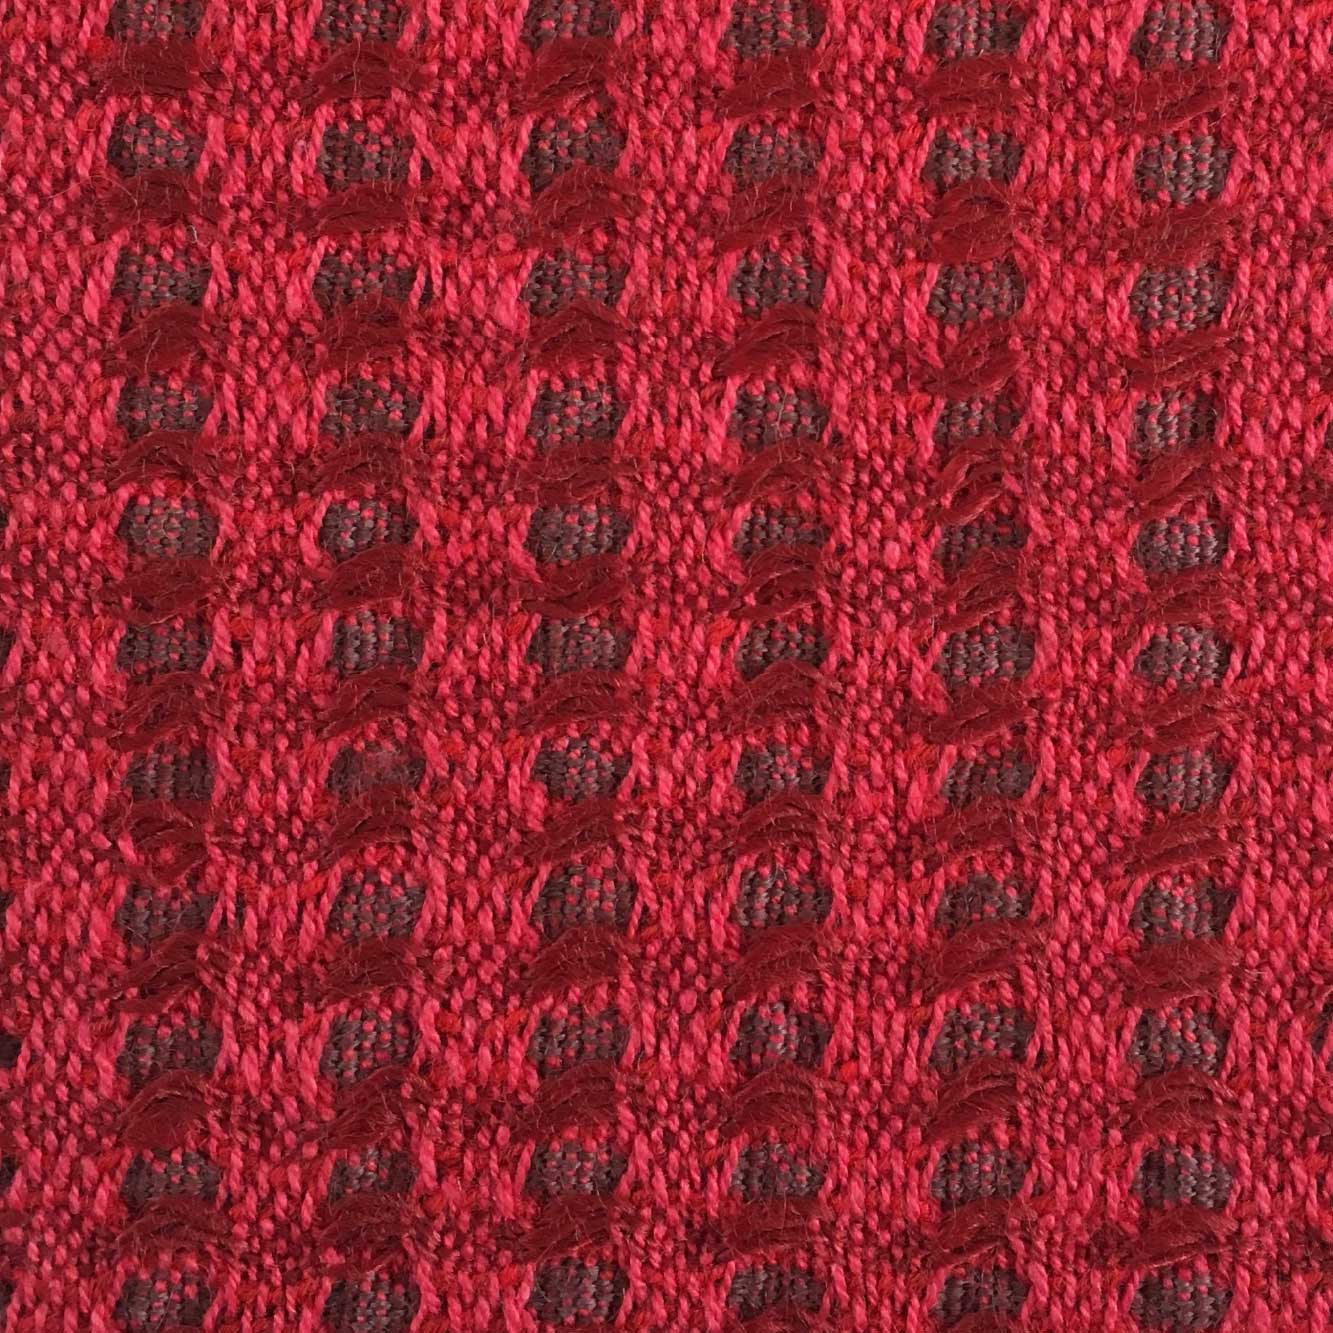 Woven Structure – Red/red #1